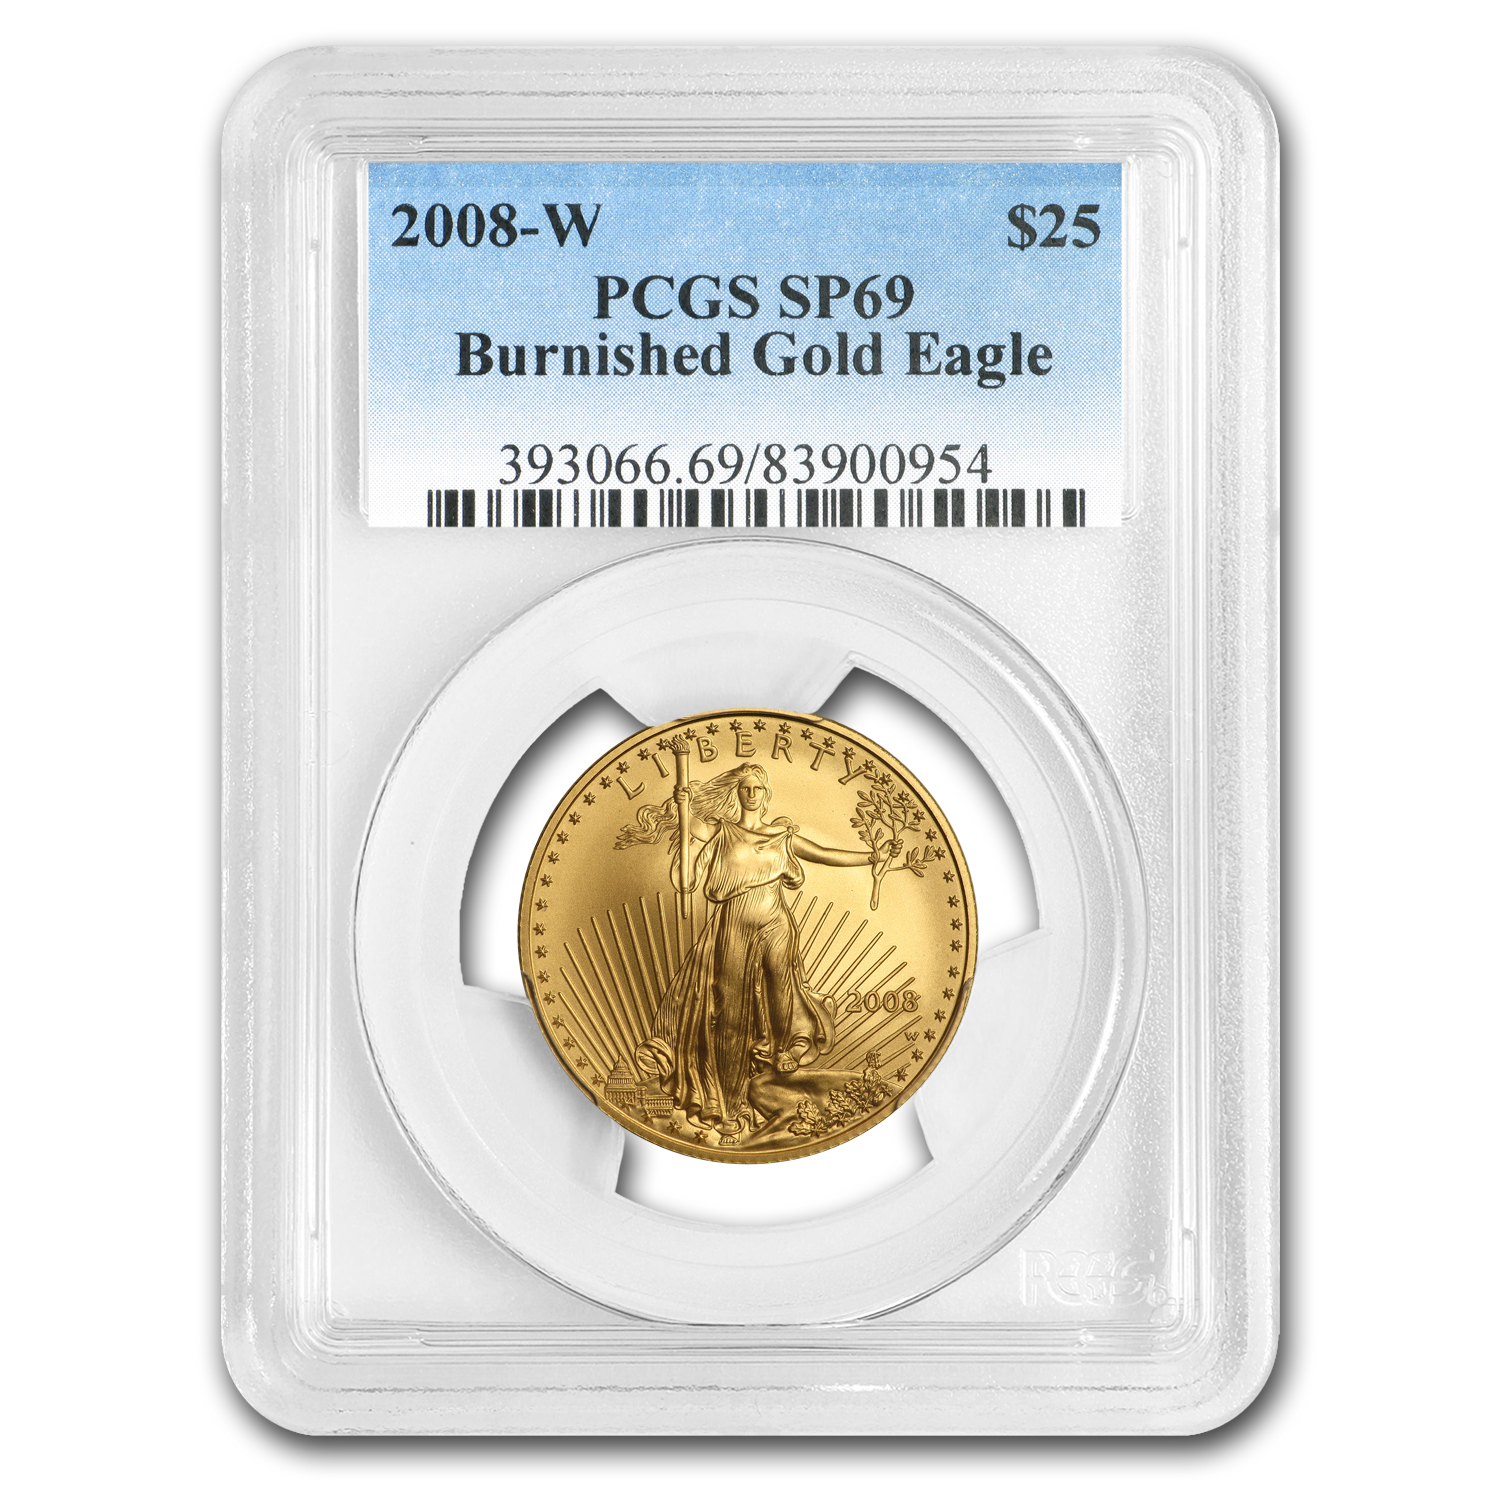 2008-W 1/2 oz Burnished Gold American Eagle MS-69 PCGS